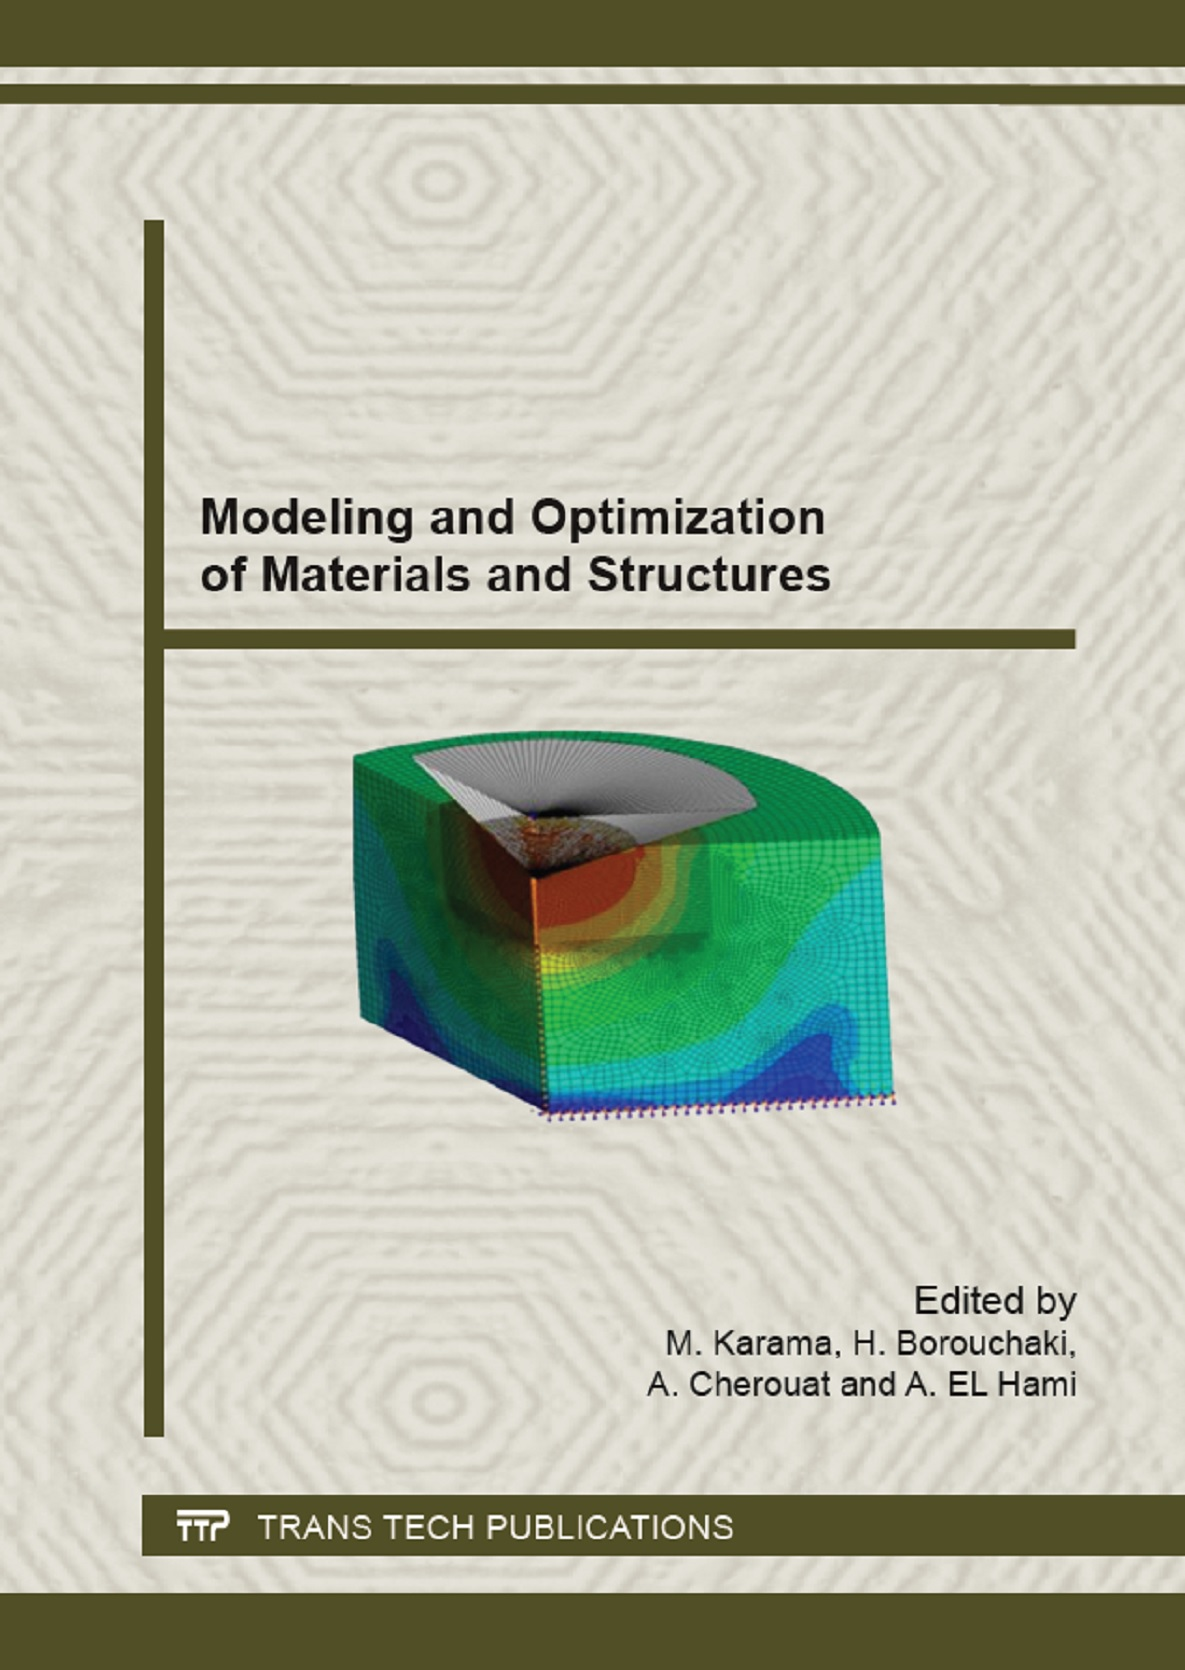 Modeling and Optimization of Materials and Structures